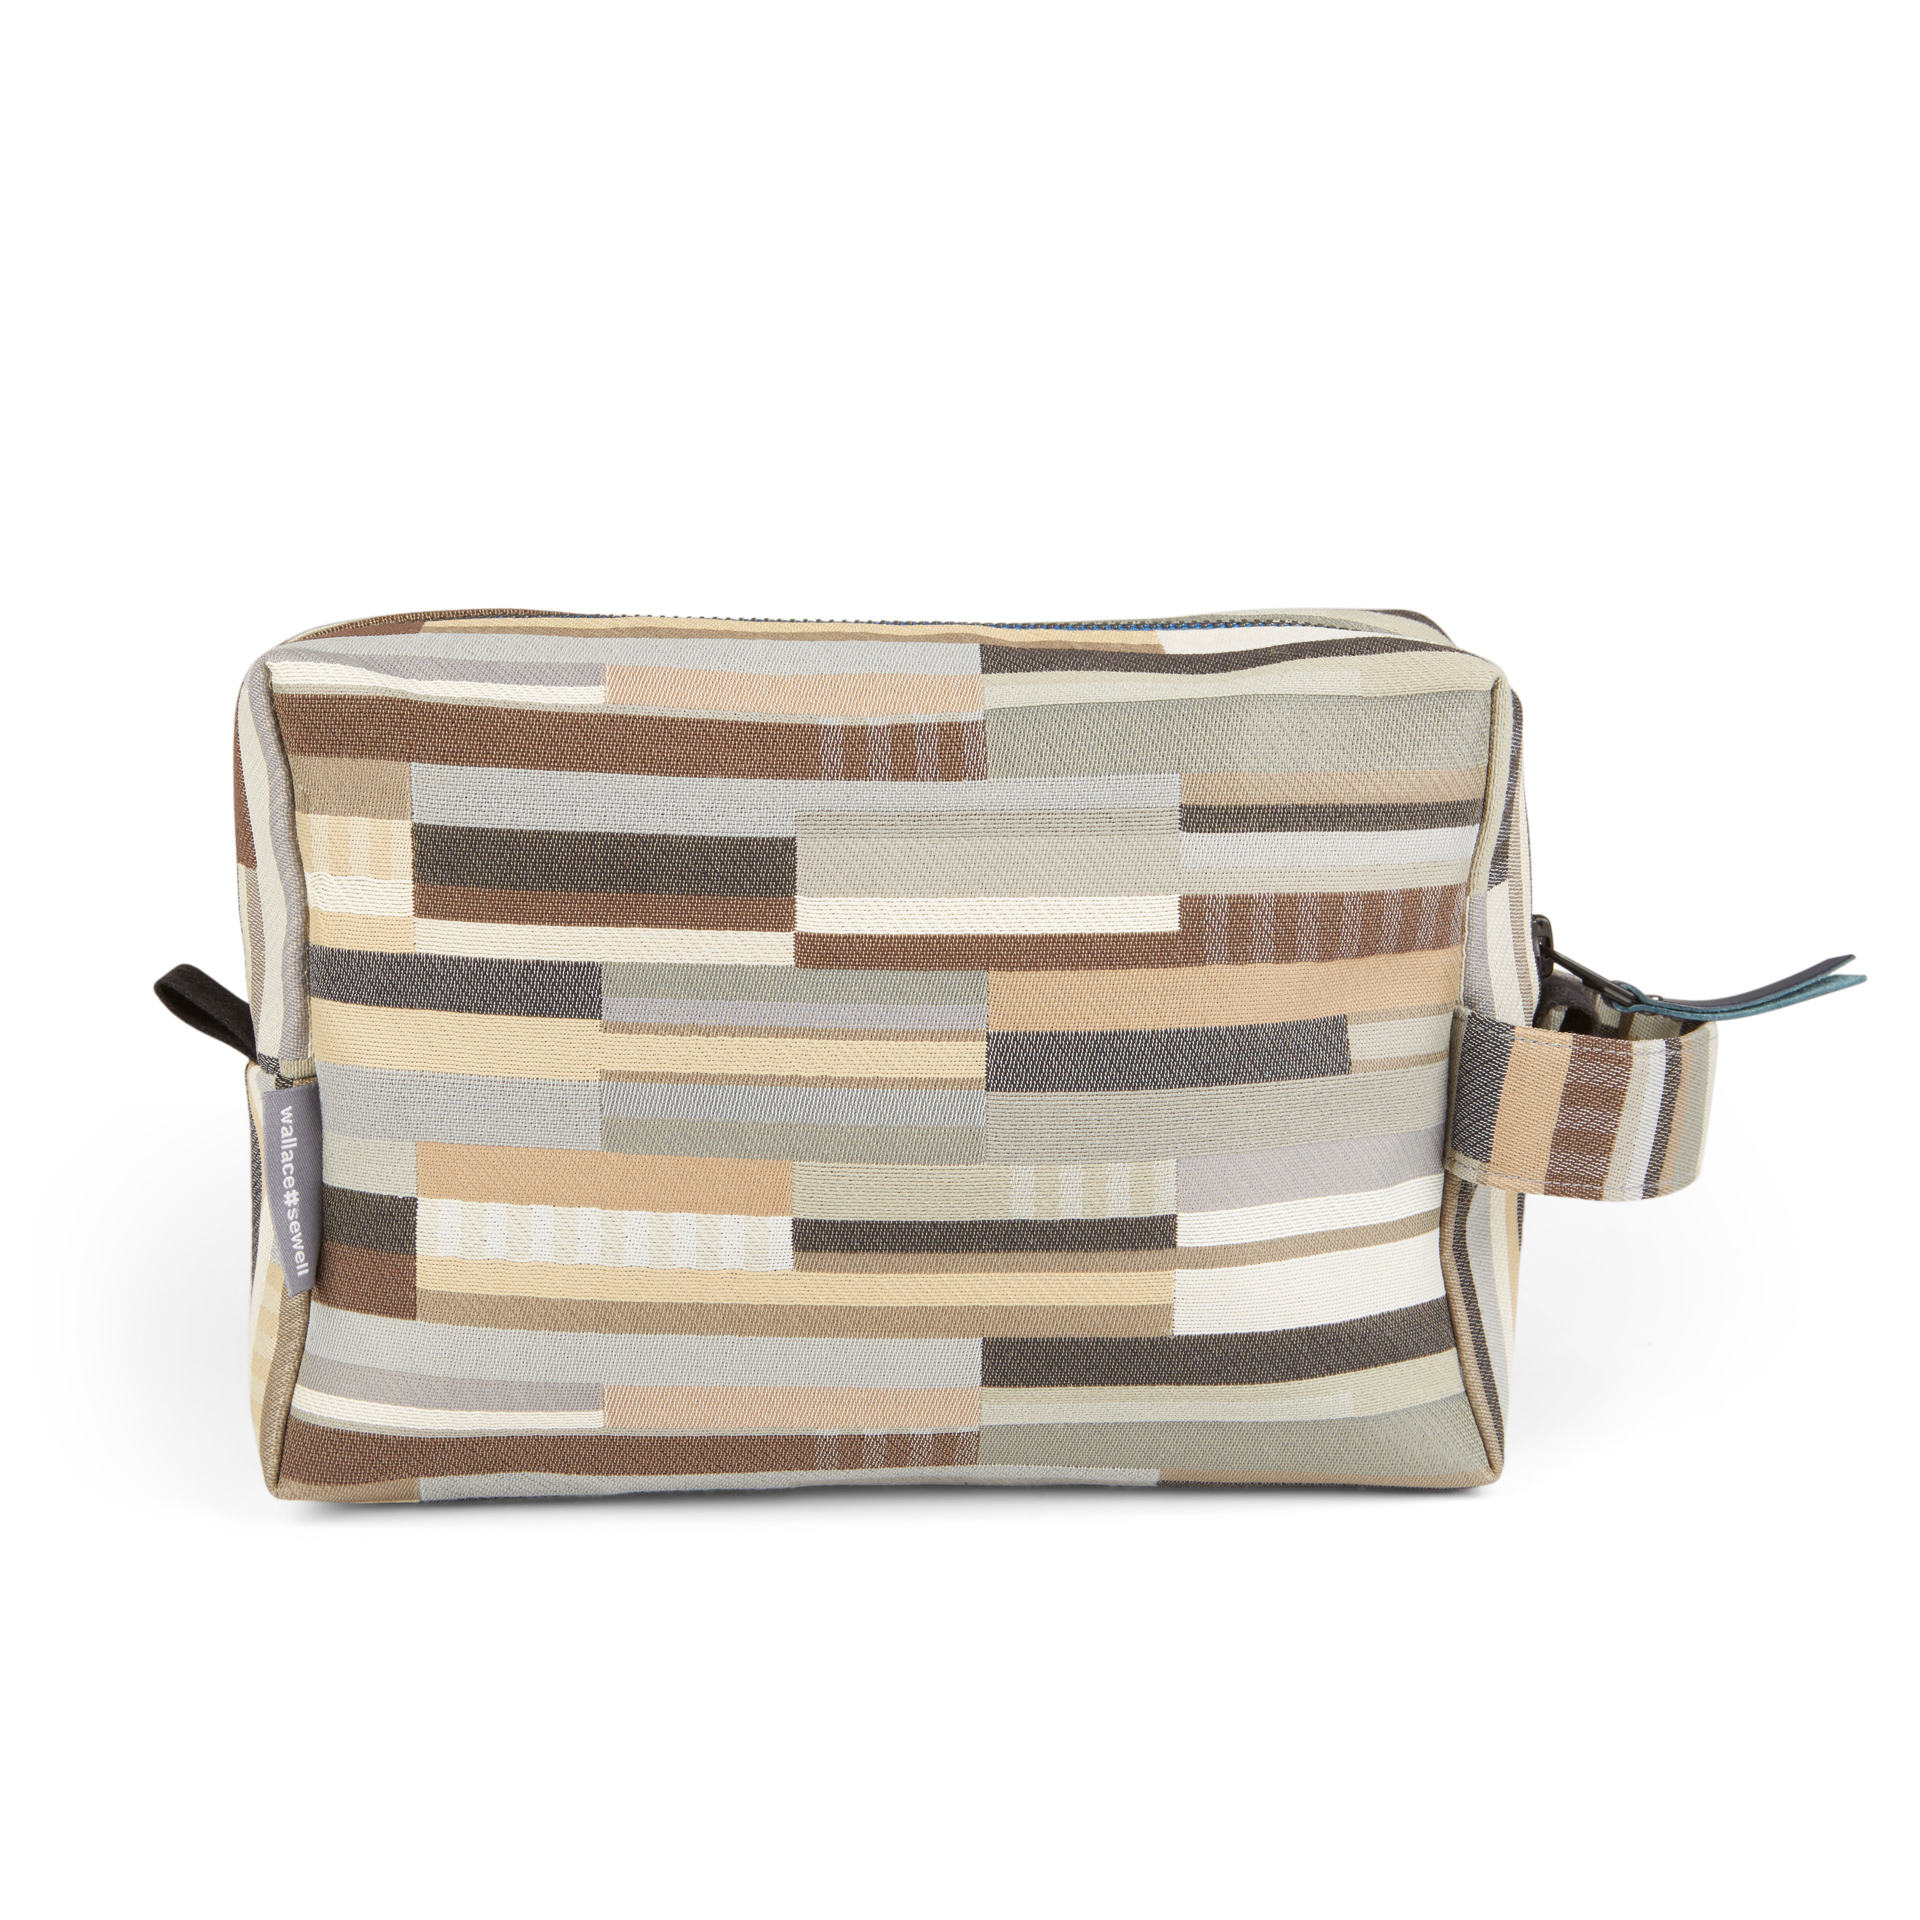 Cubitt Toiletry Bag - Neutral